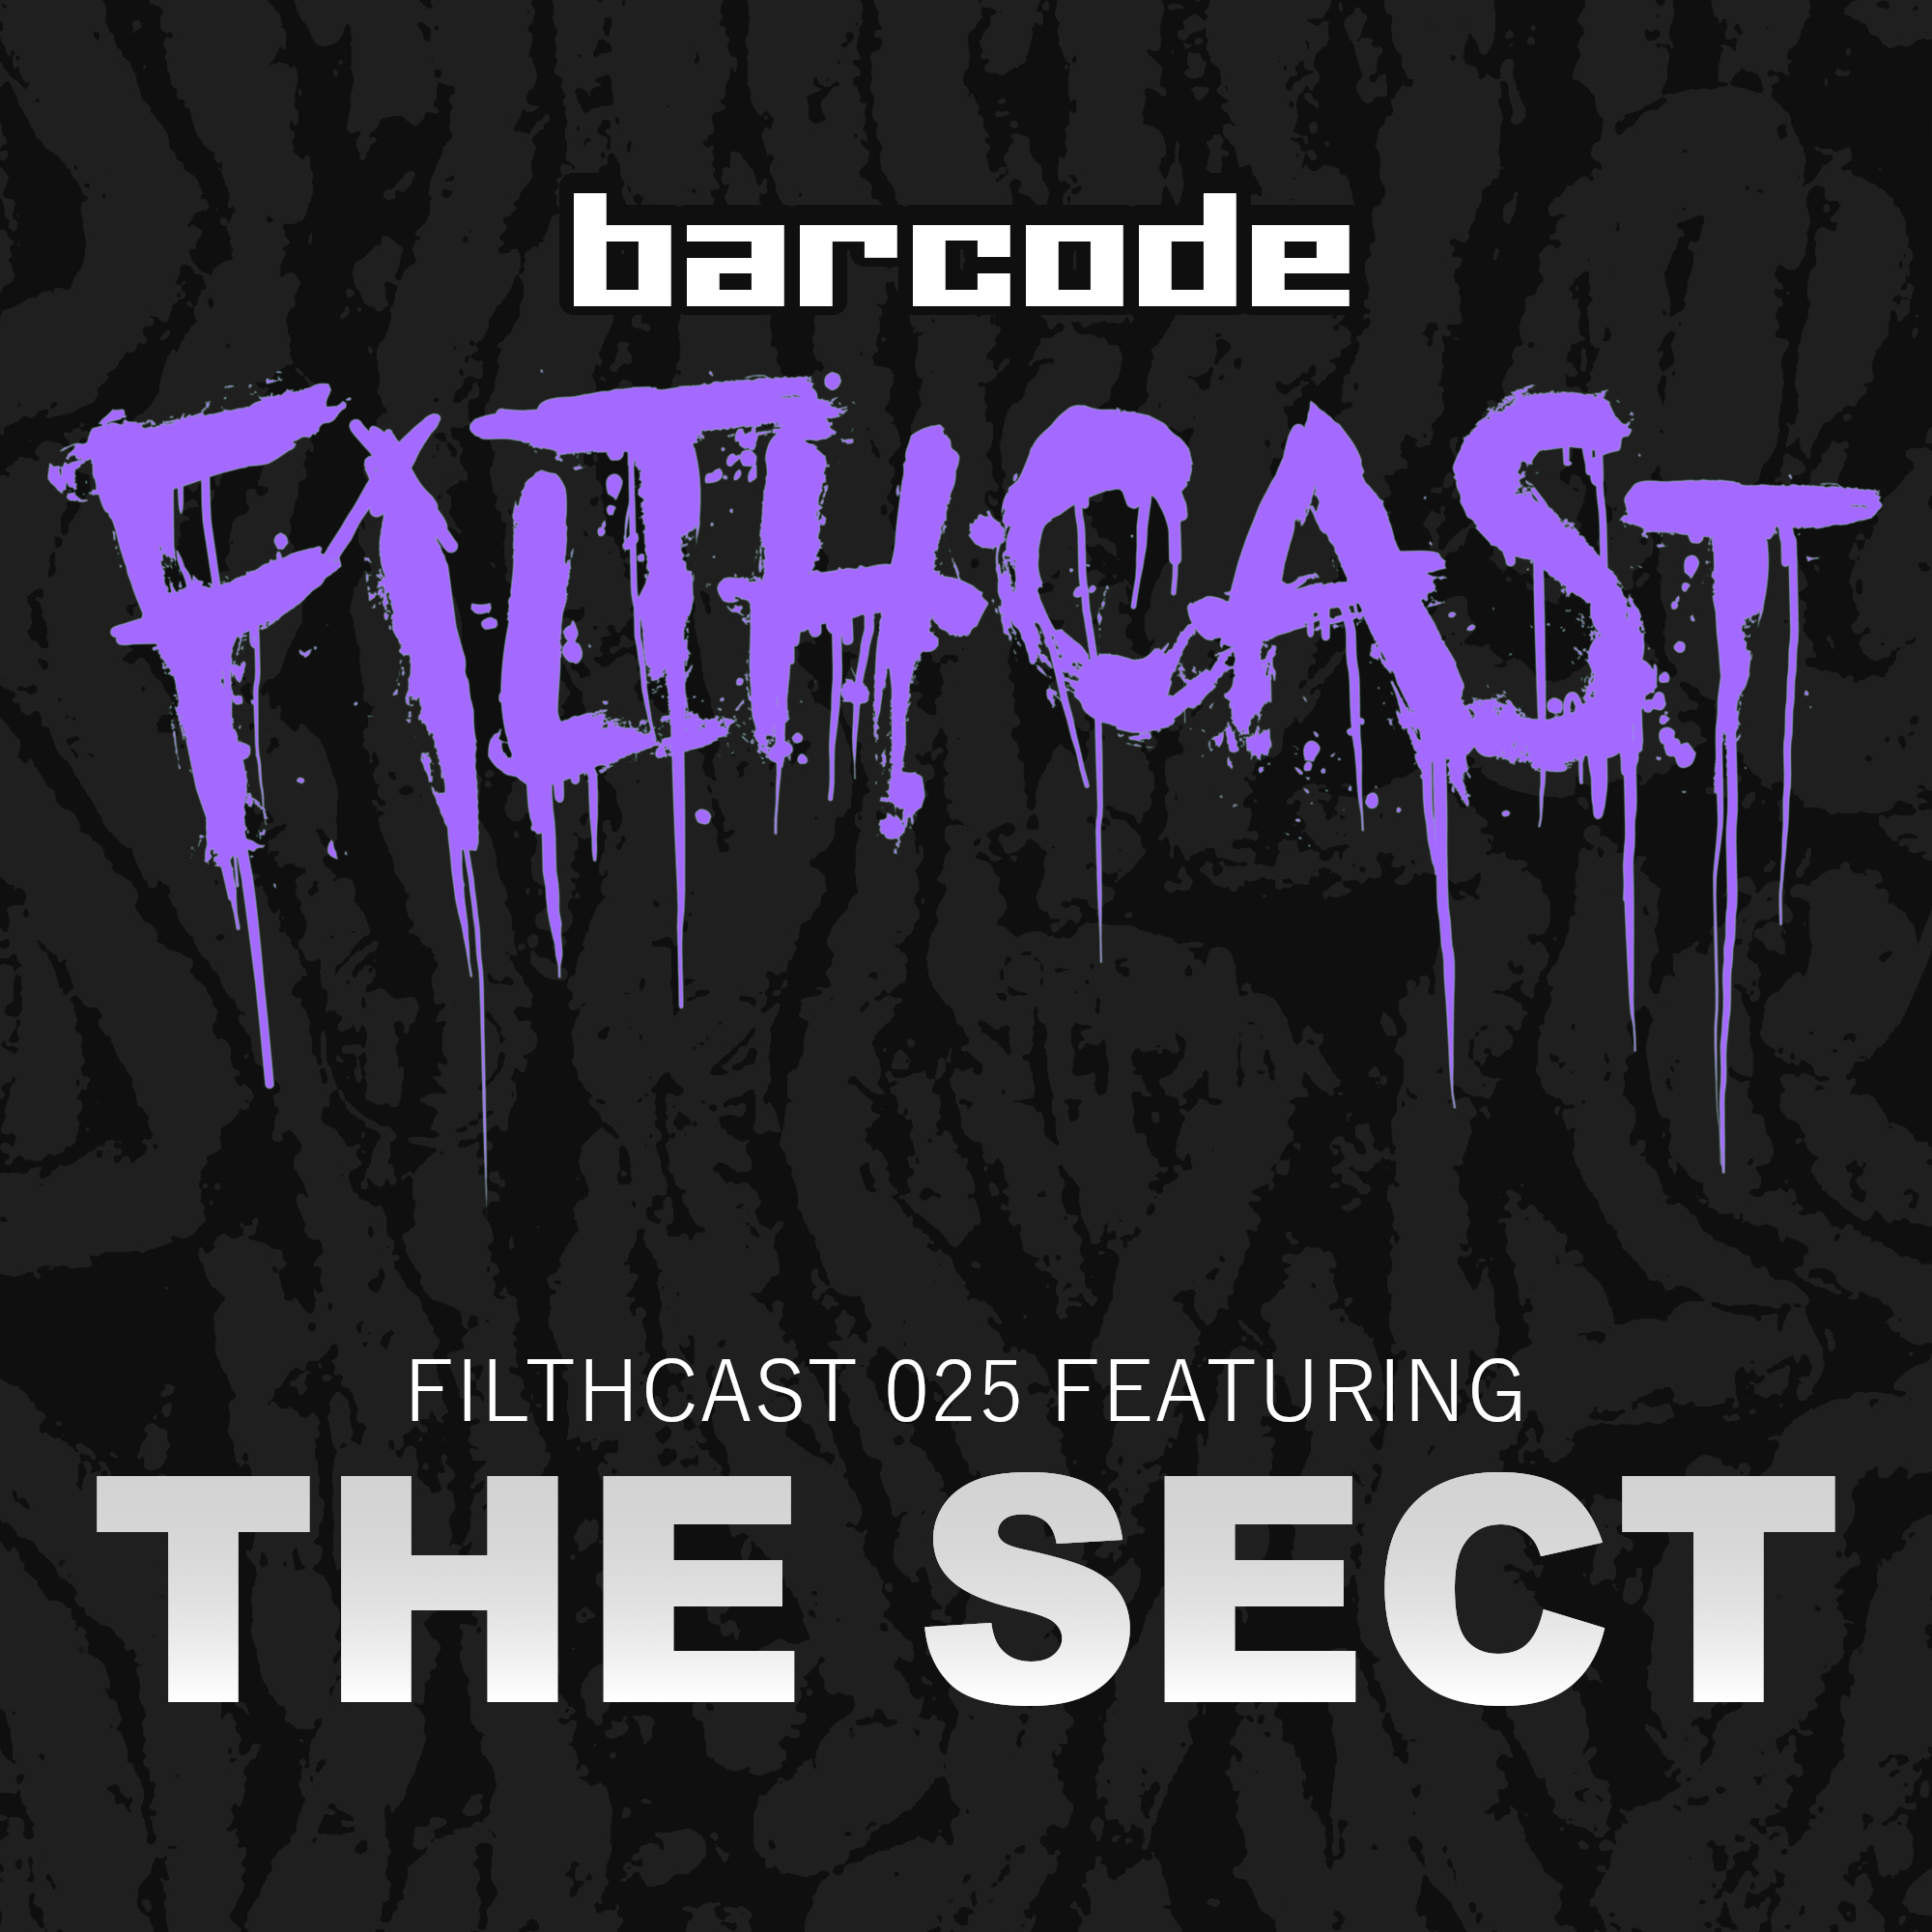 Flying the flag for the dnb/techno crossover, over the years The Sect have recruited a worldwide cult following surrounding their music and performances. Their first contribution to the Filthcast bleeps & rolls the fuck out.